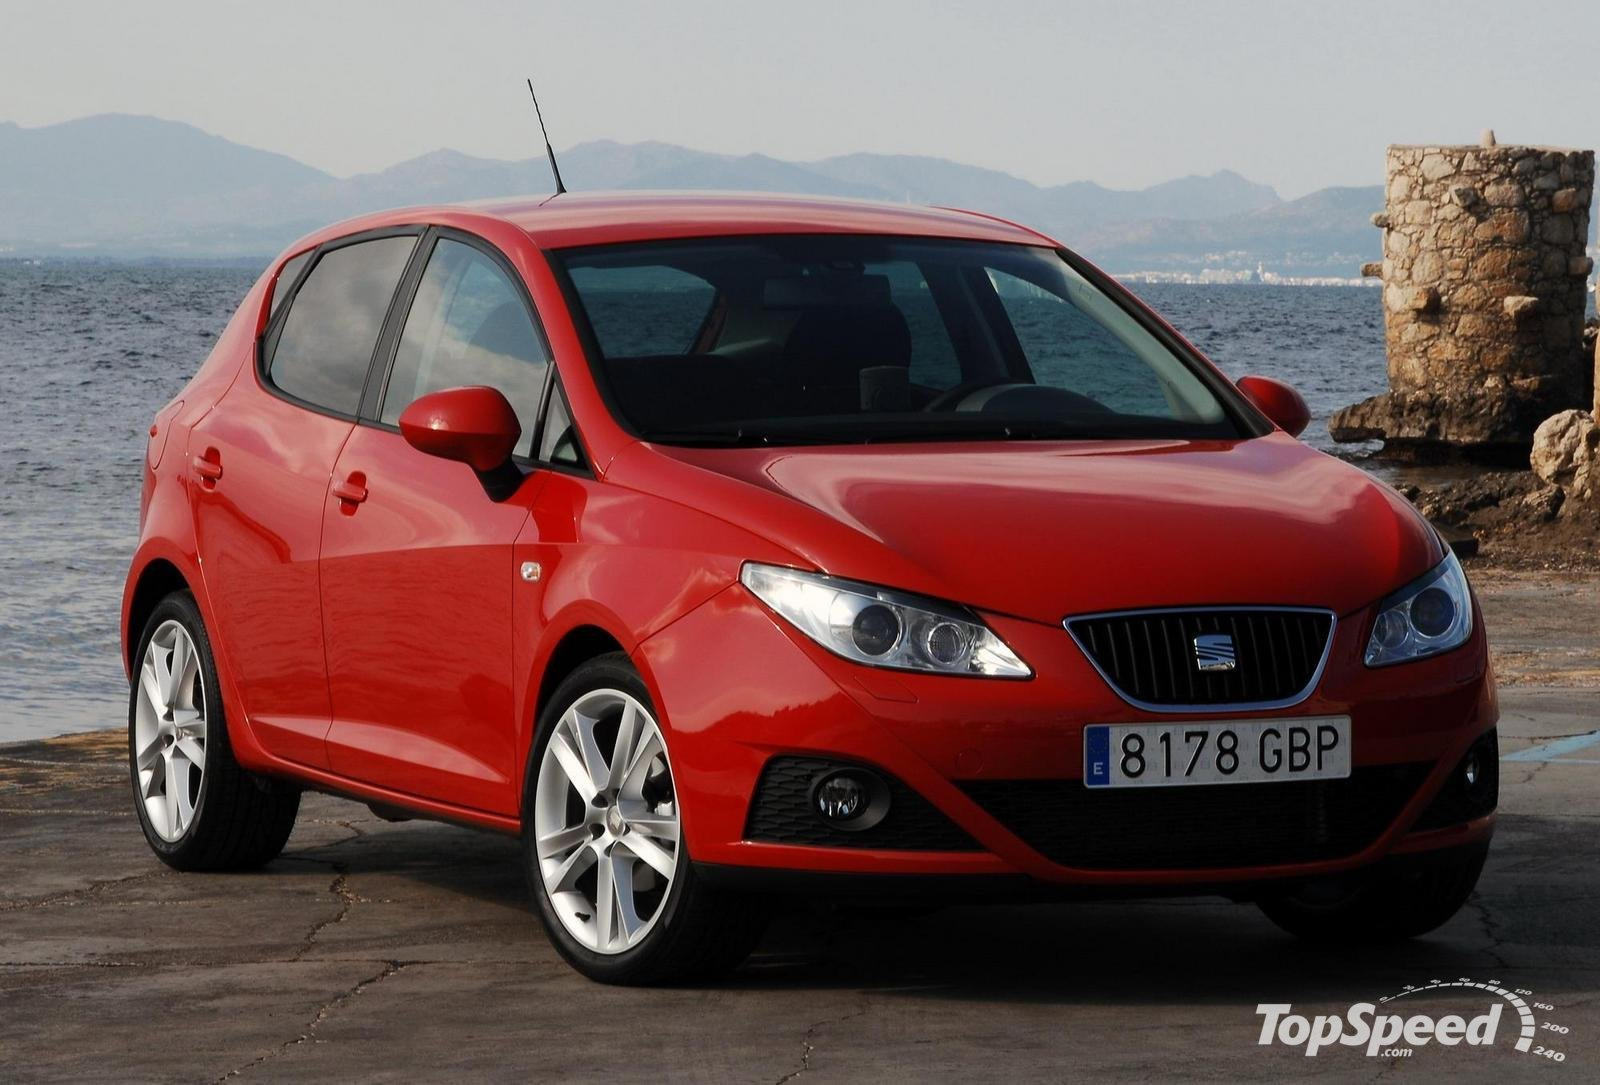 seat ibiza car technical data car specifications vehicle. Black Bedroom Furniture Sets. Home Design Ideas